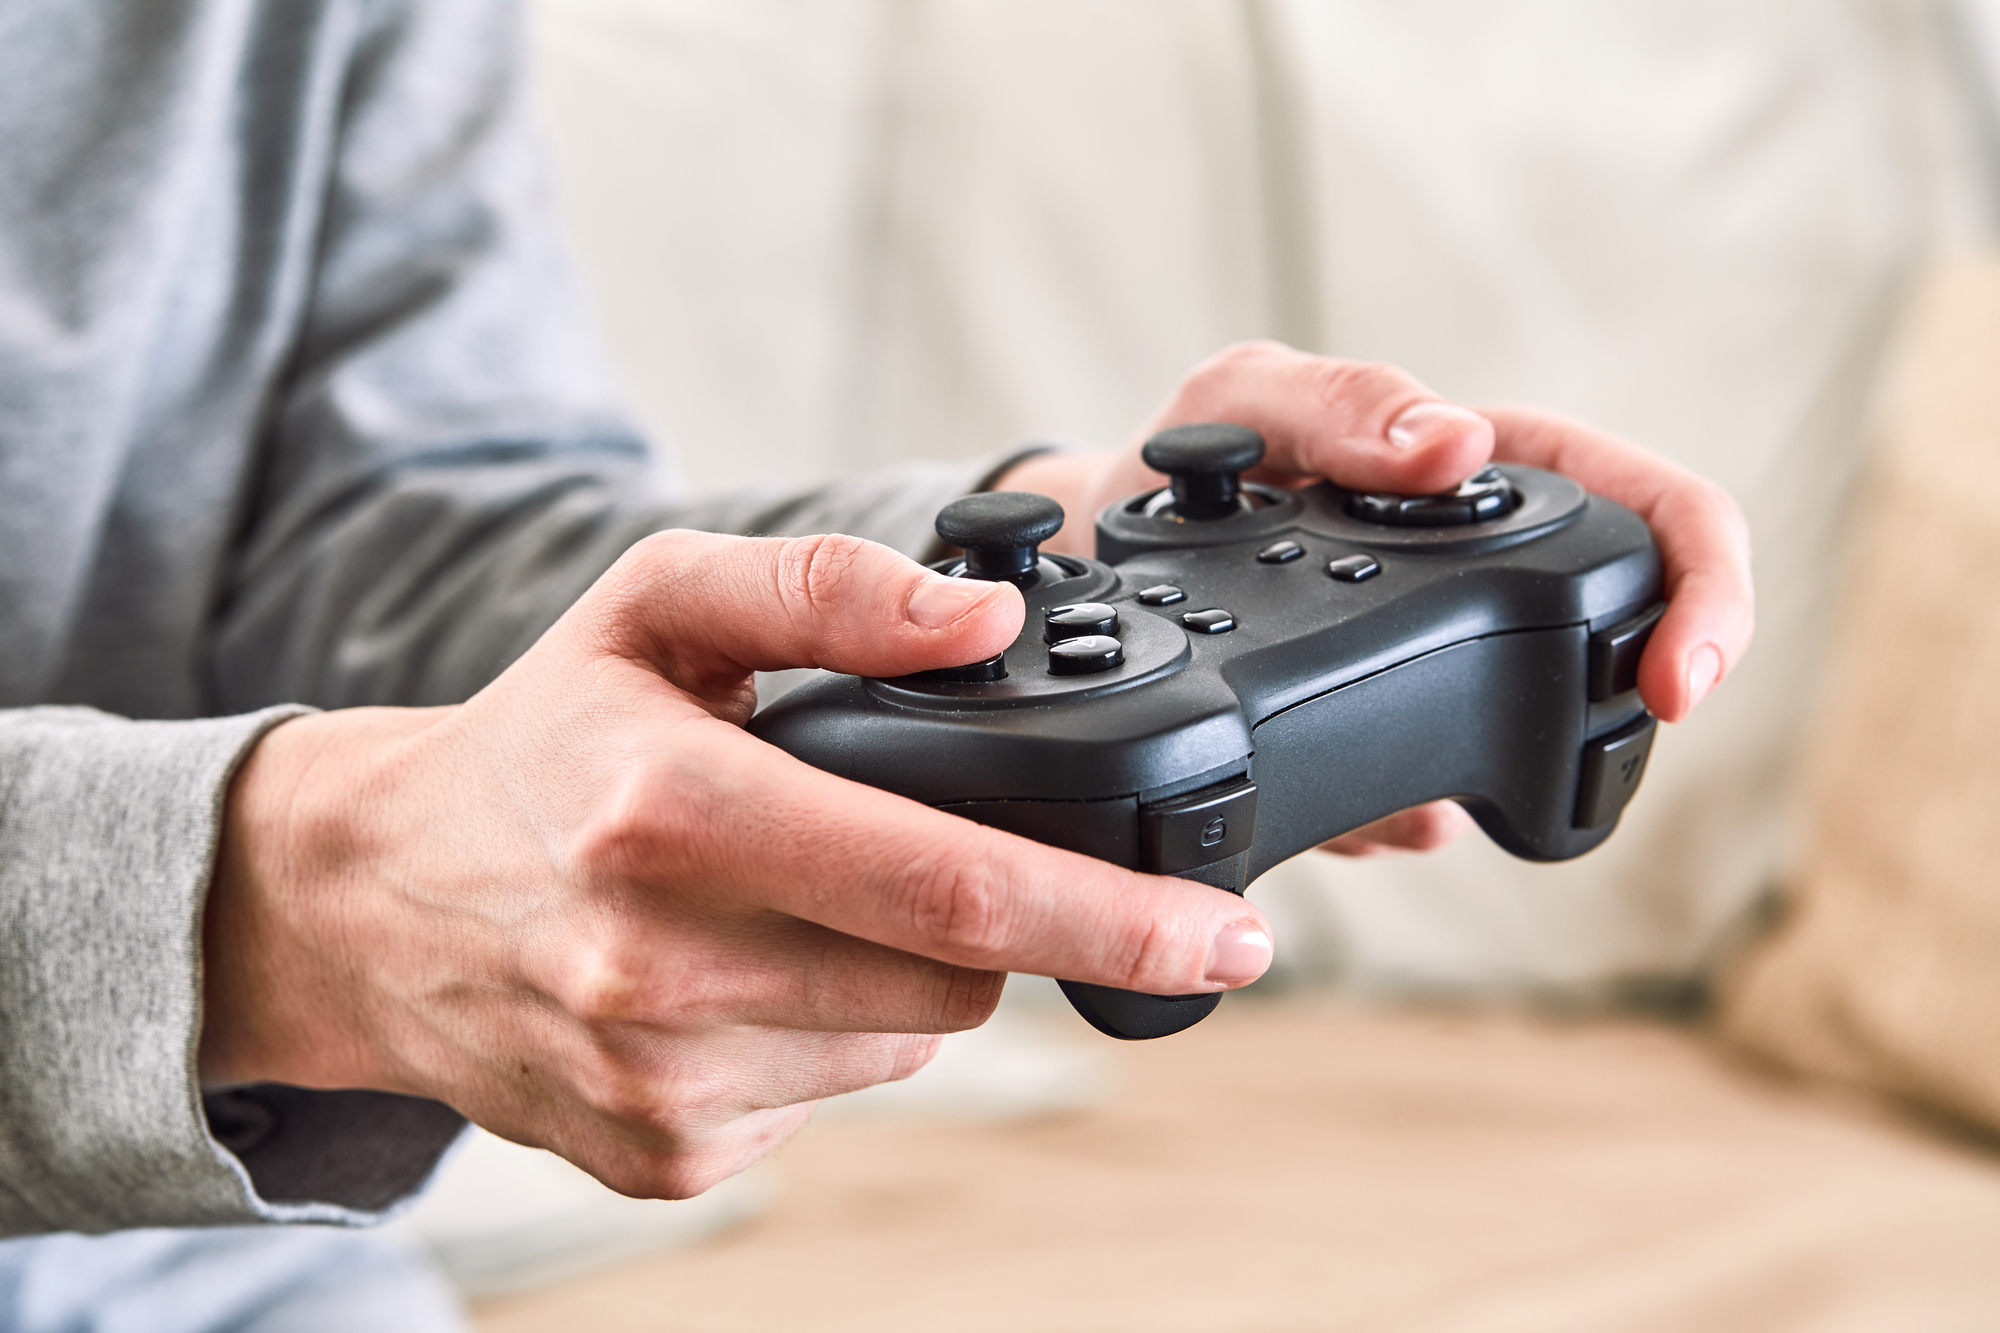 A person's hands are holding a video game controller. The rest of the person isn't visible and the room behind them is blurred.